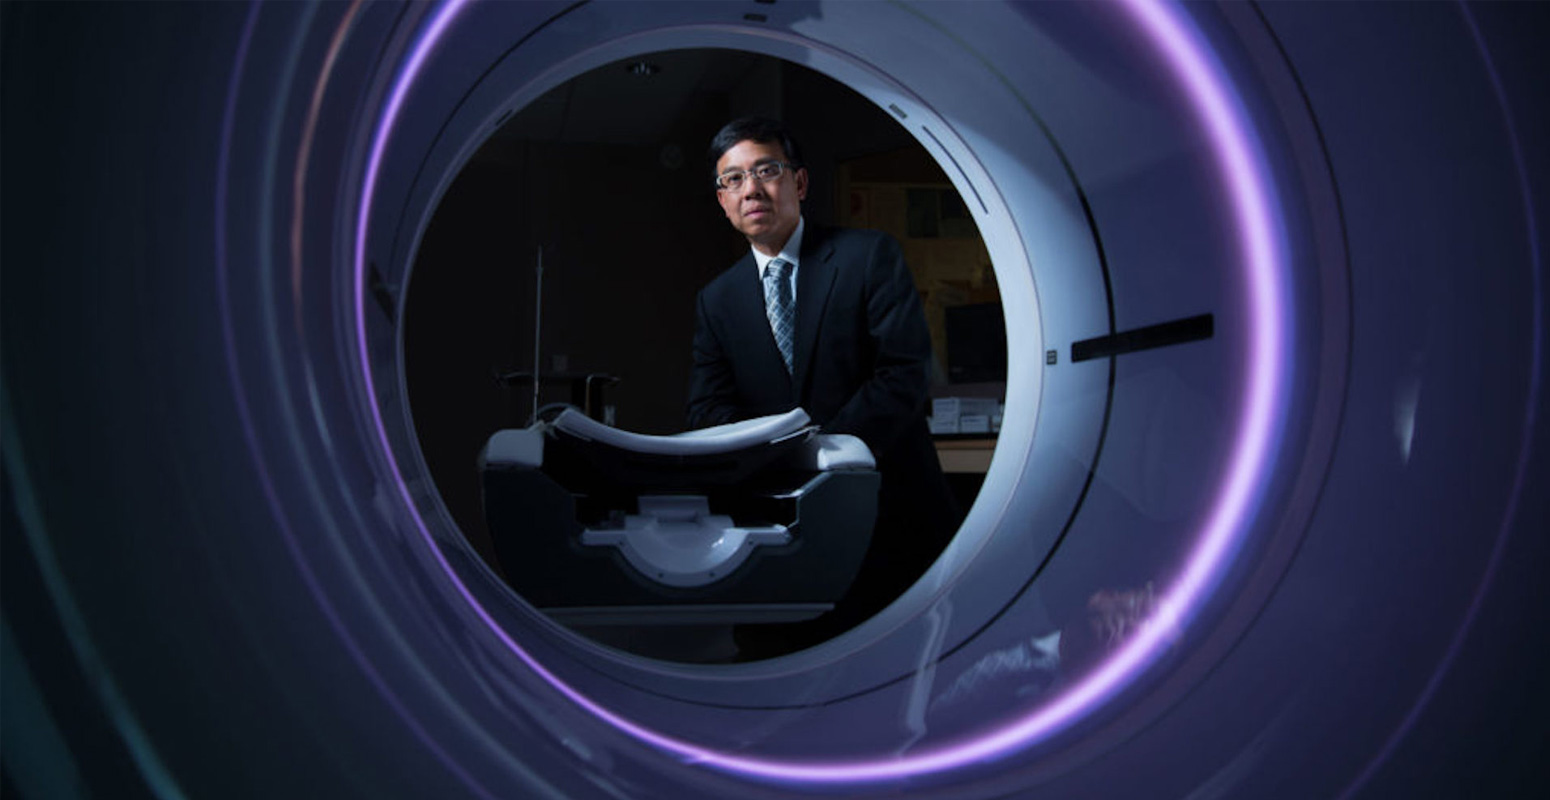 Ting lee through a CT machine